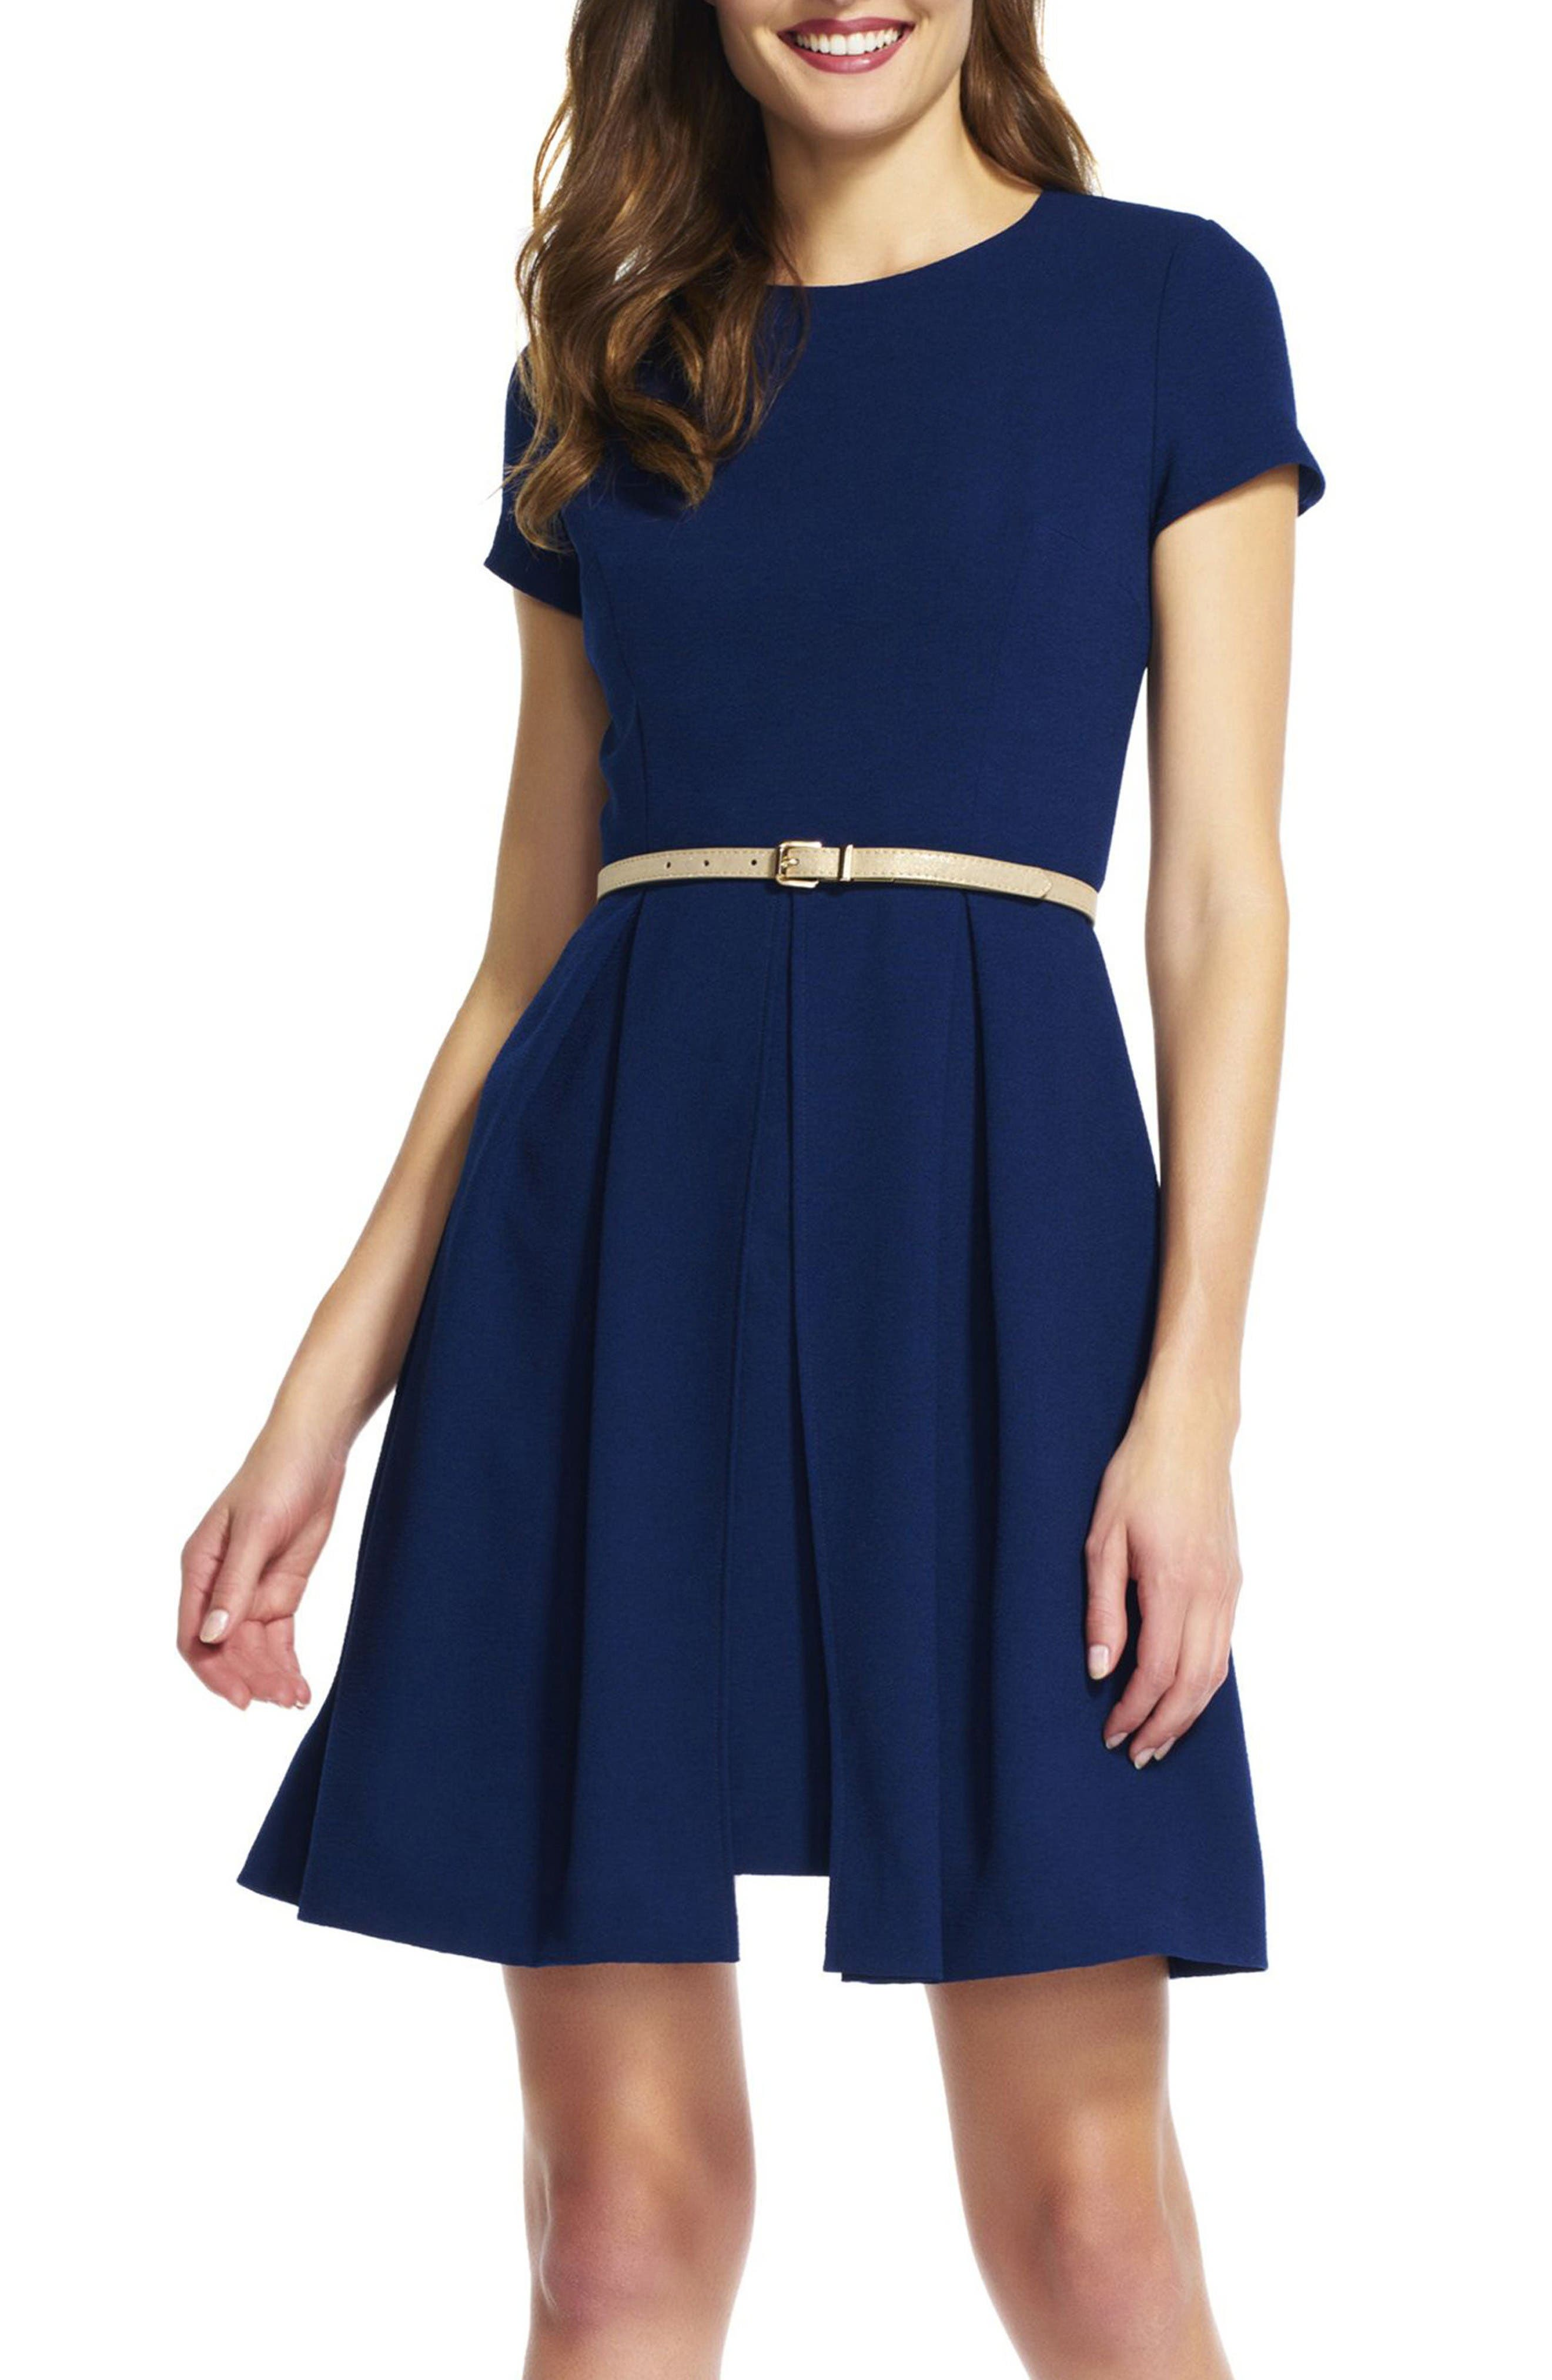 Main Image - Adrianna Papell Belted Textured Crepe Fit & Flare Dress